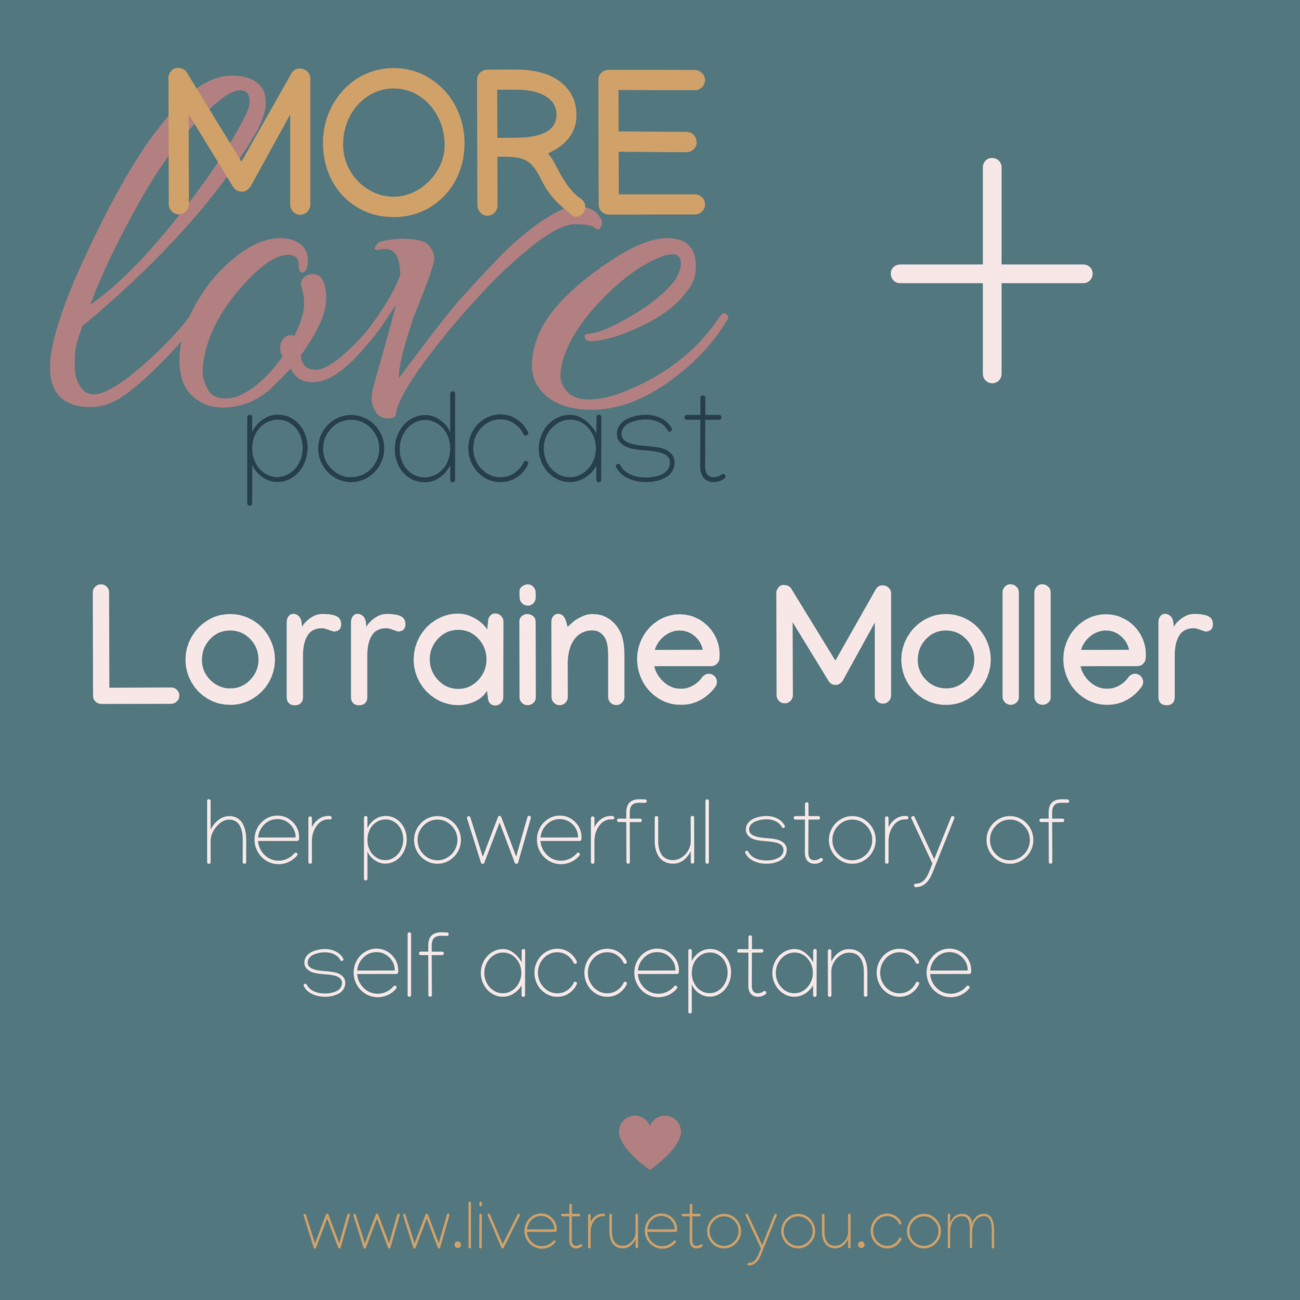 Running with Self Doubt? - Gold Medal Coaching with Lorraine Moller